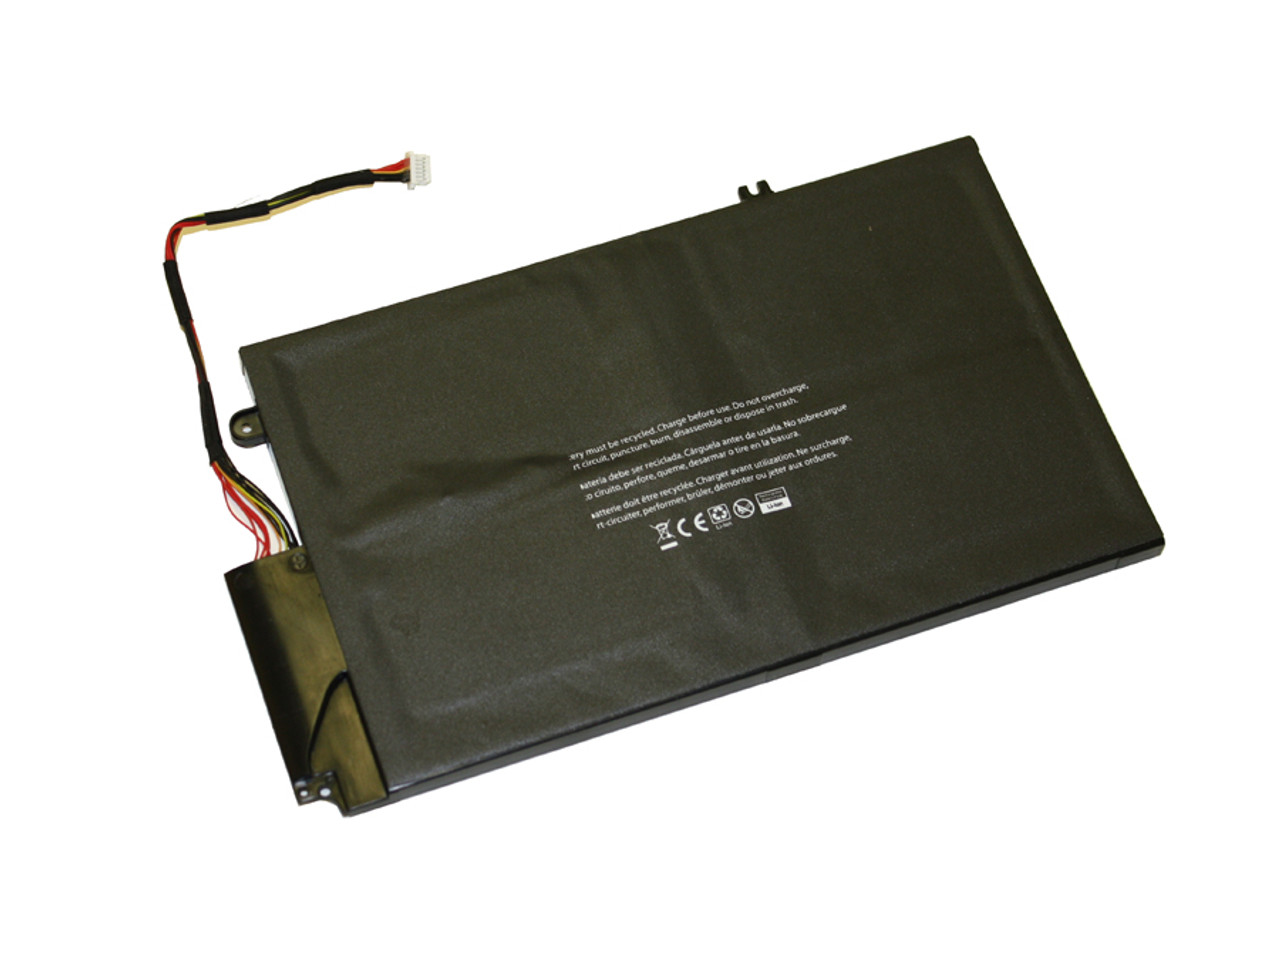 Battery for HP ENVY 4-1000, 4-1100, 4-1200, 4T-1000, 4T-1100, 4T-1200 SERIES[HPK-1413]